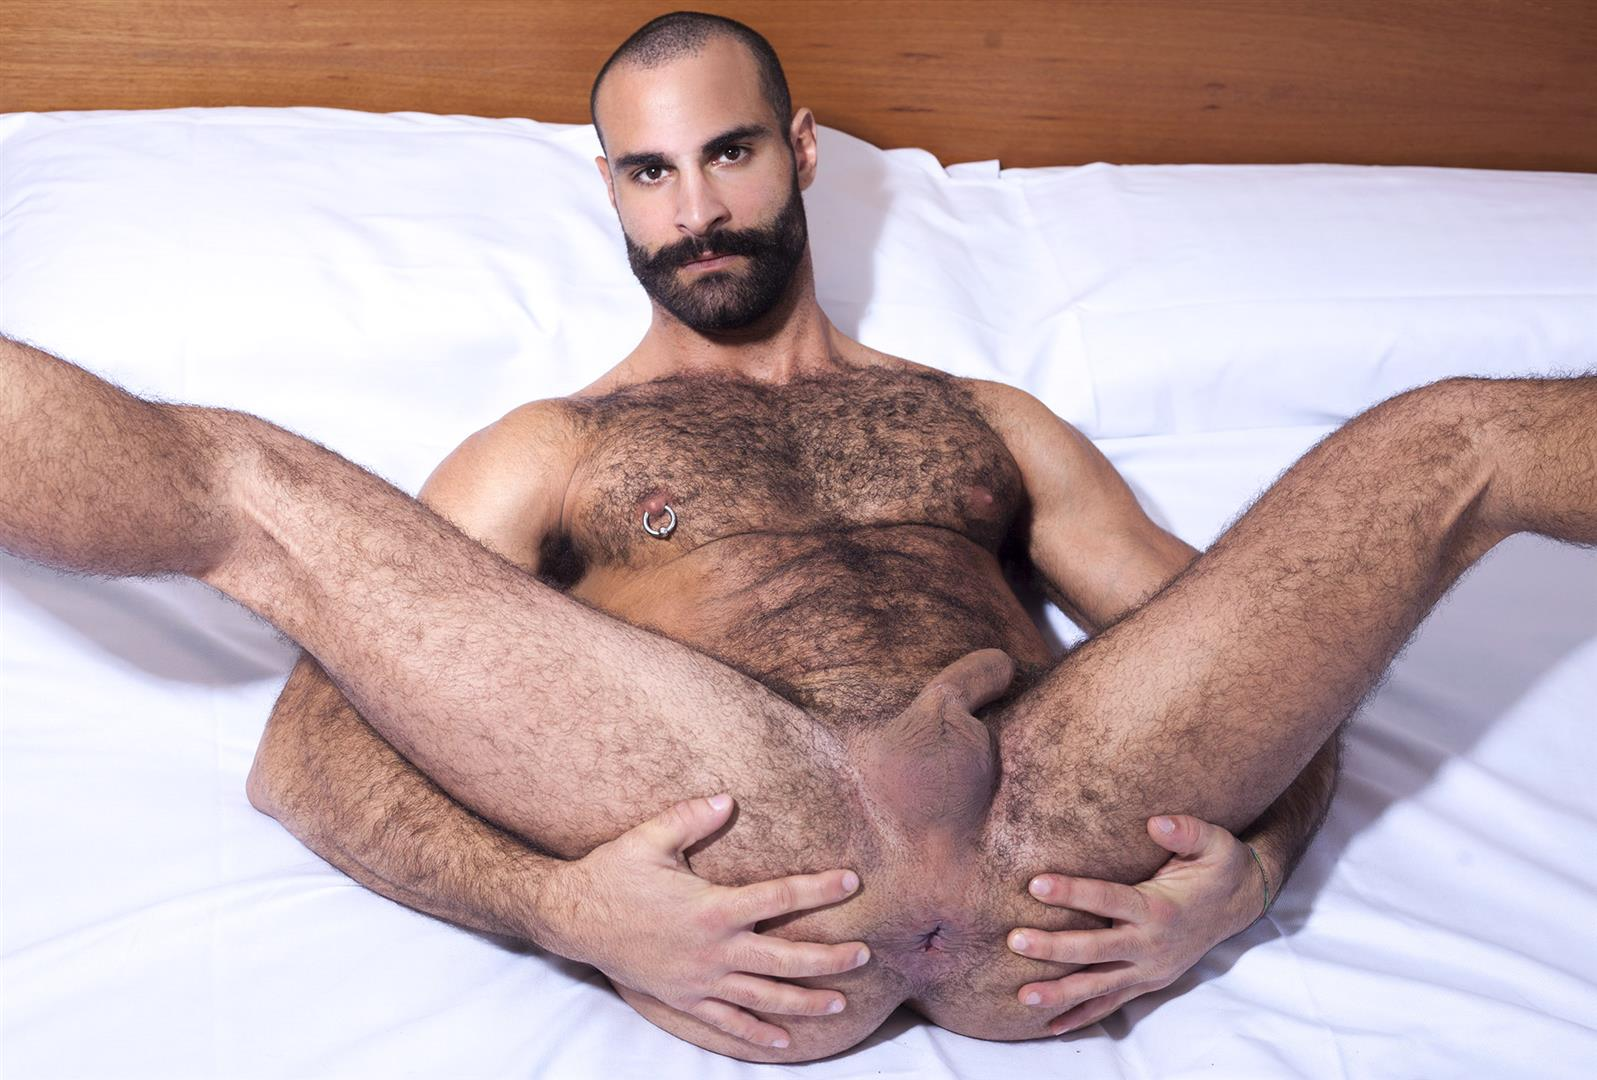 Fuckermate Jean Frank and Paco Hairy Muscle Hunks With Big Uncut Cocks Fucking Amateur Gay Porn 18